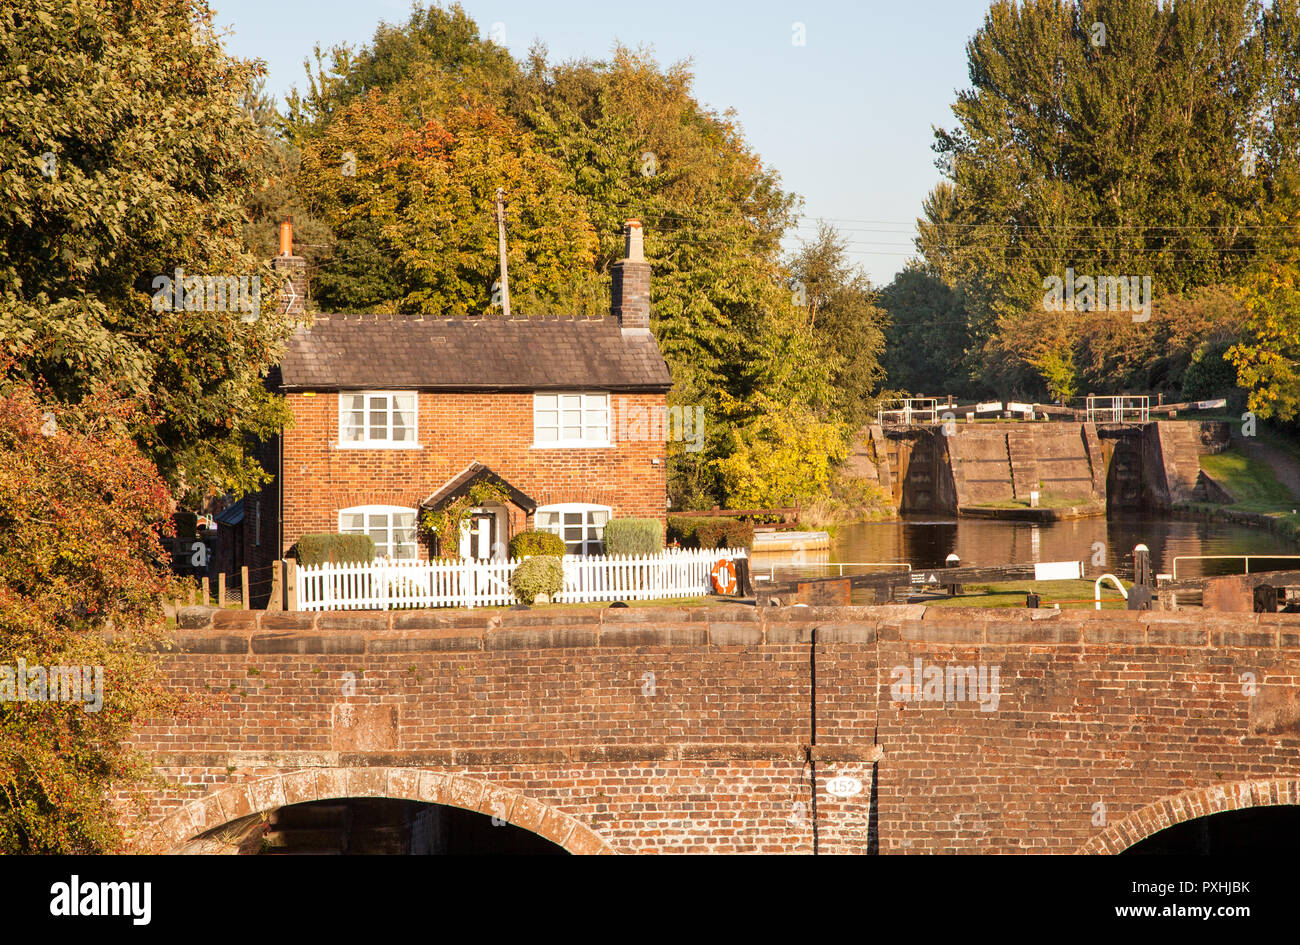 Lock keepers cottage and locks on the Trent and Mersey canal at Wheelock Cheshire England - Stock Image